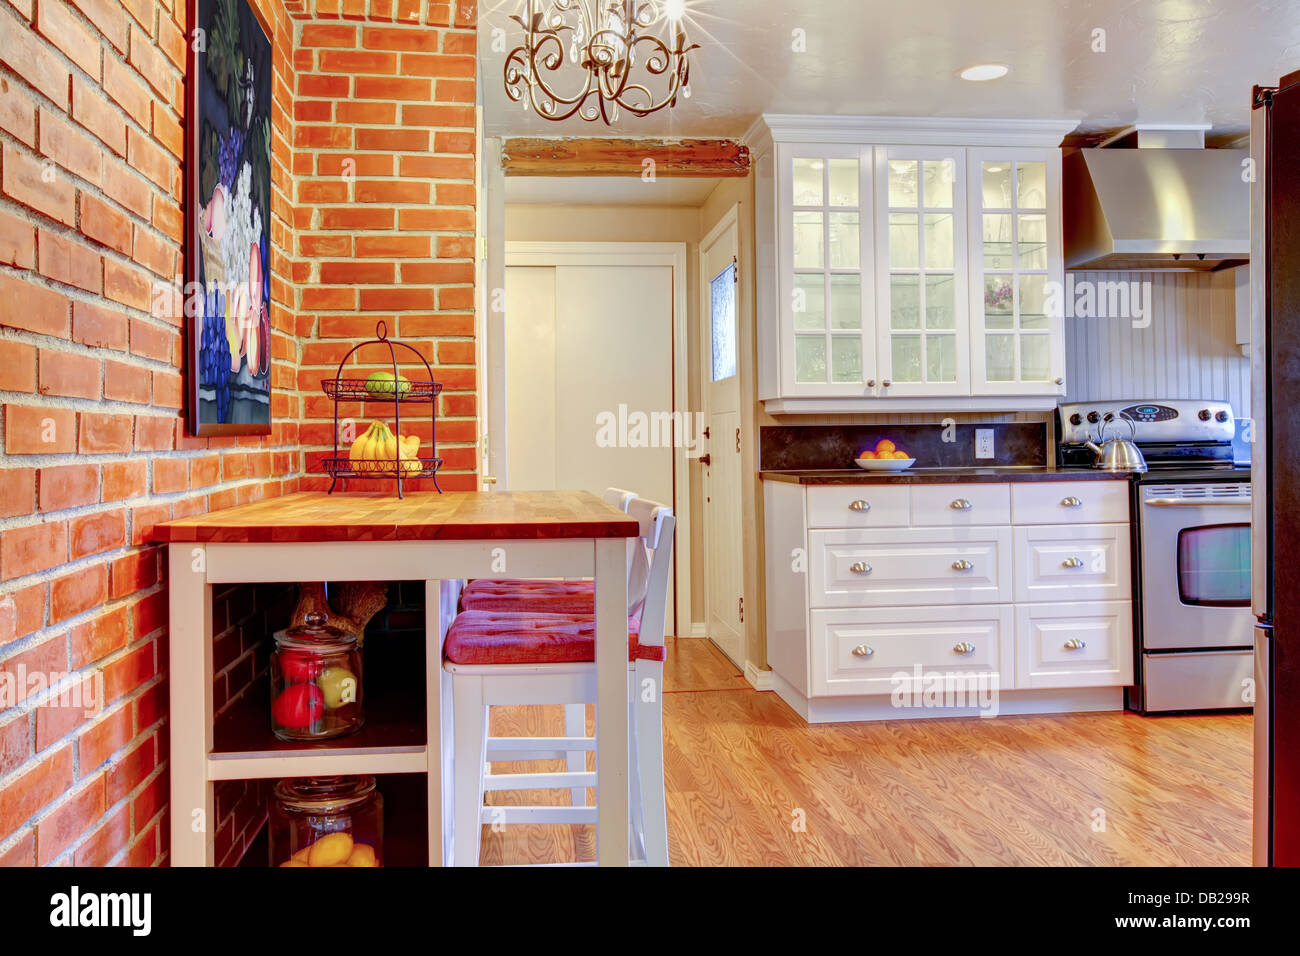 Kitchen Brick Wall White Kitchen With Brick Wall Hardwood And Stainless